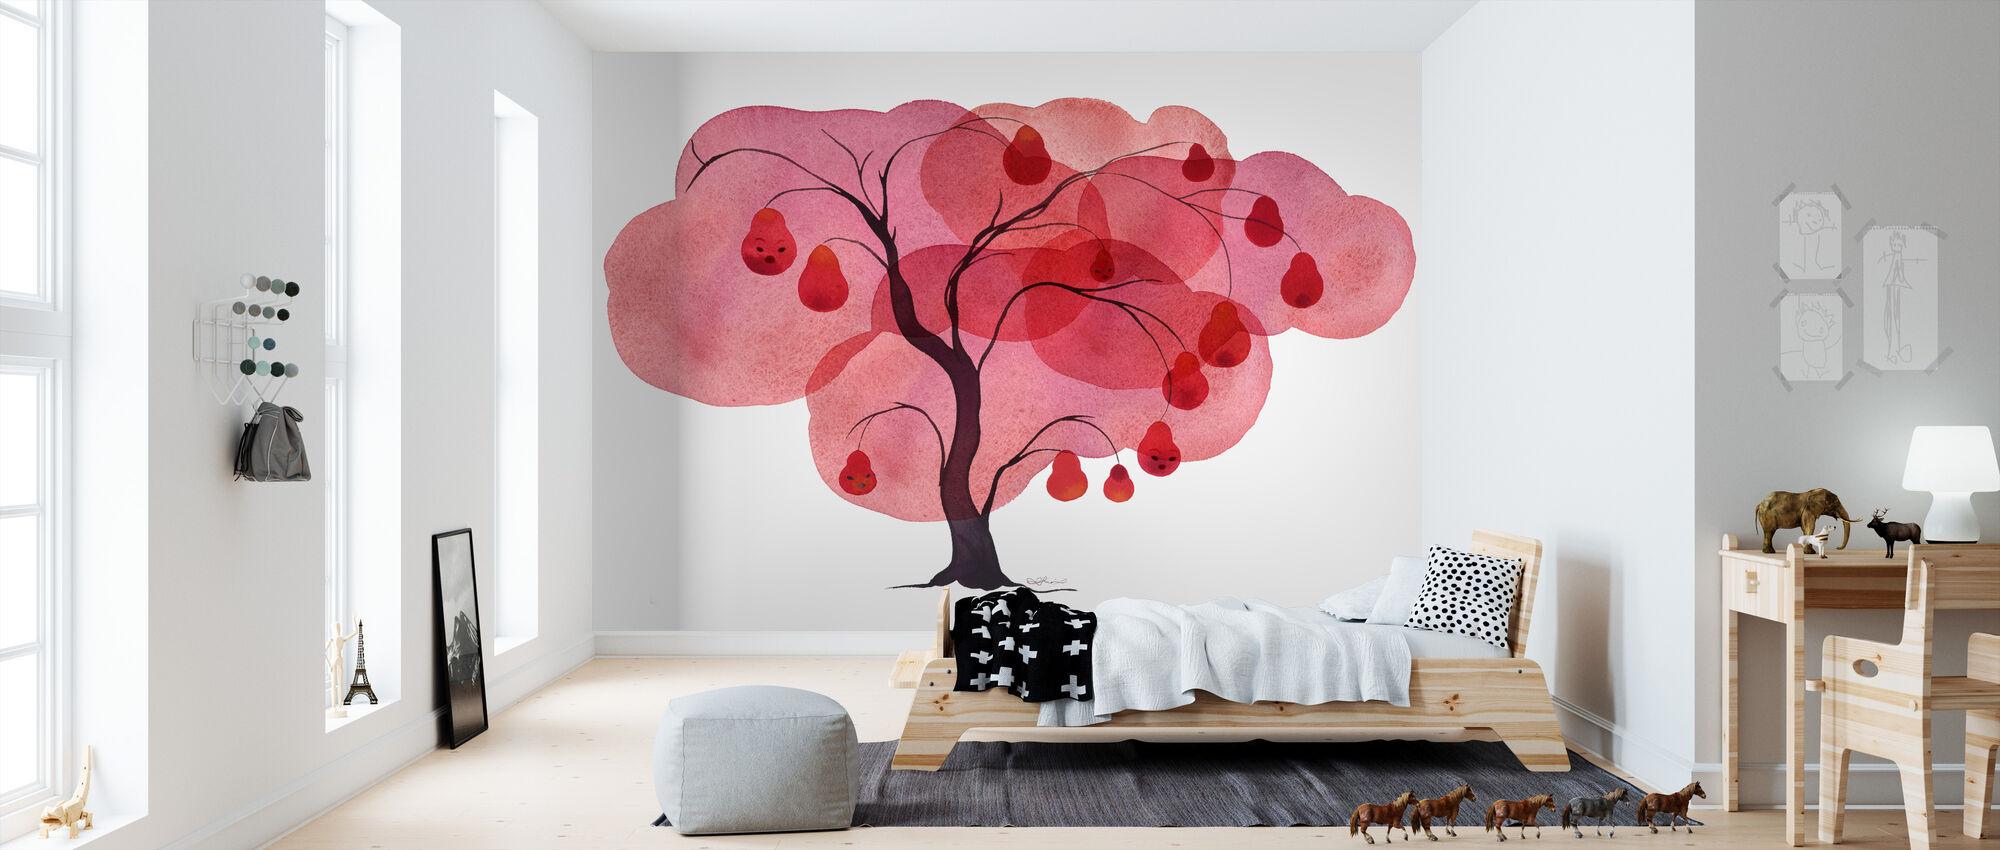 Water Color Trees I - Wallpaper - Kids Room